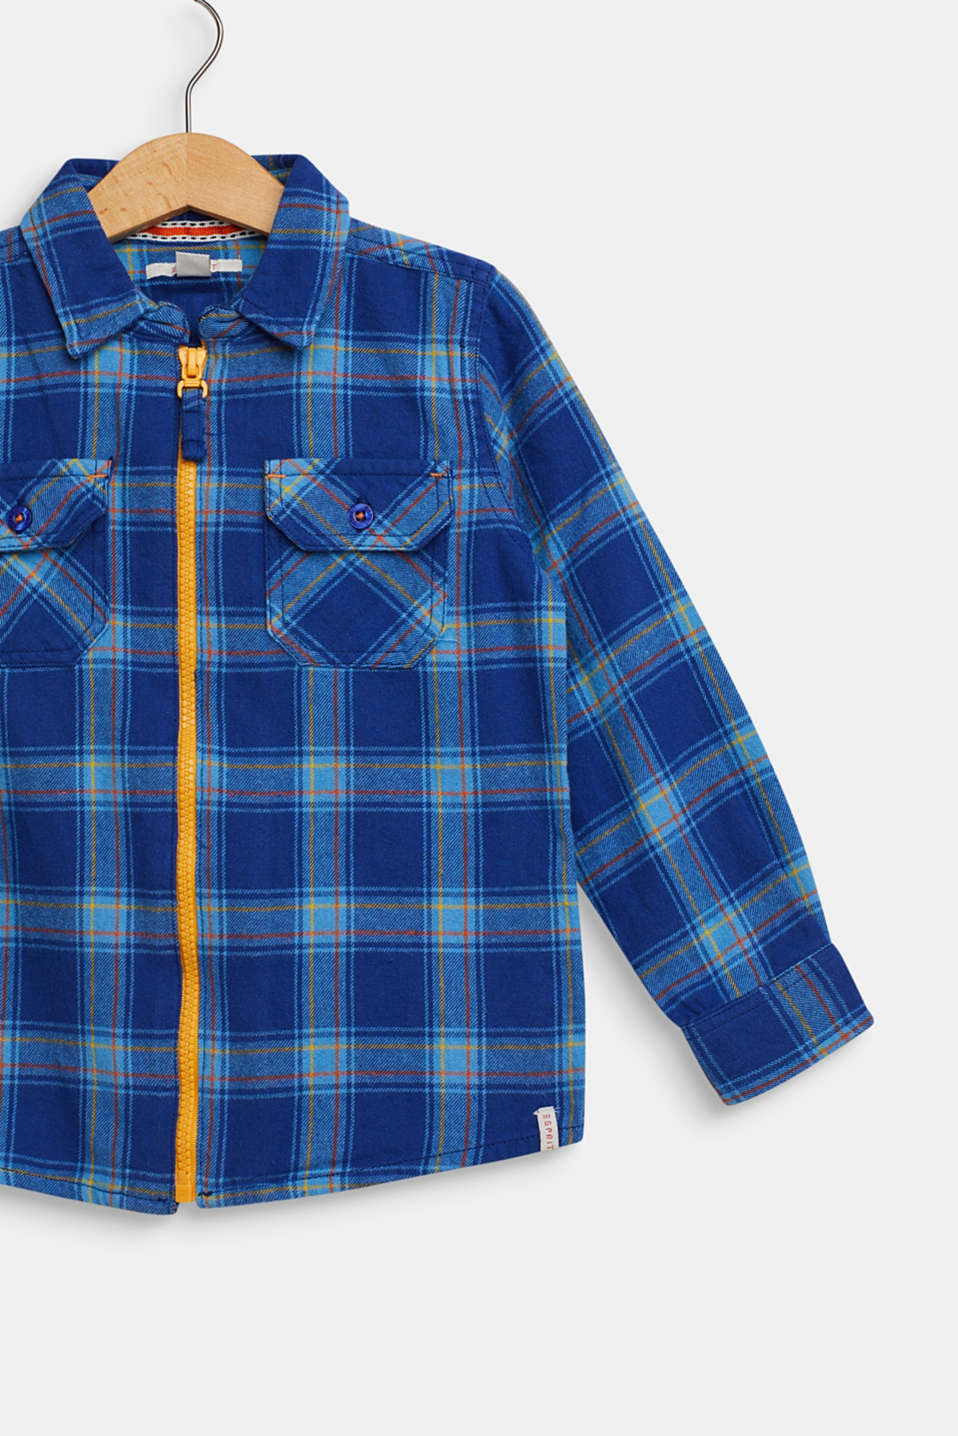 Checked flannel shirt, 100% cotton, indigo, detail image number 3